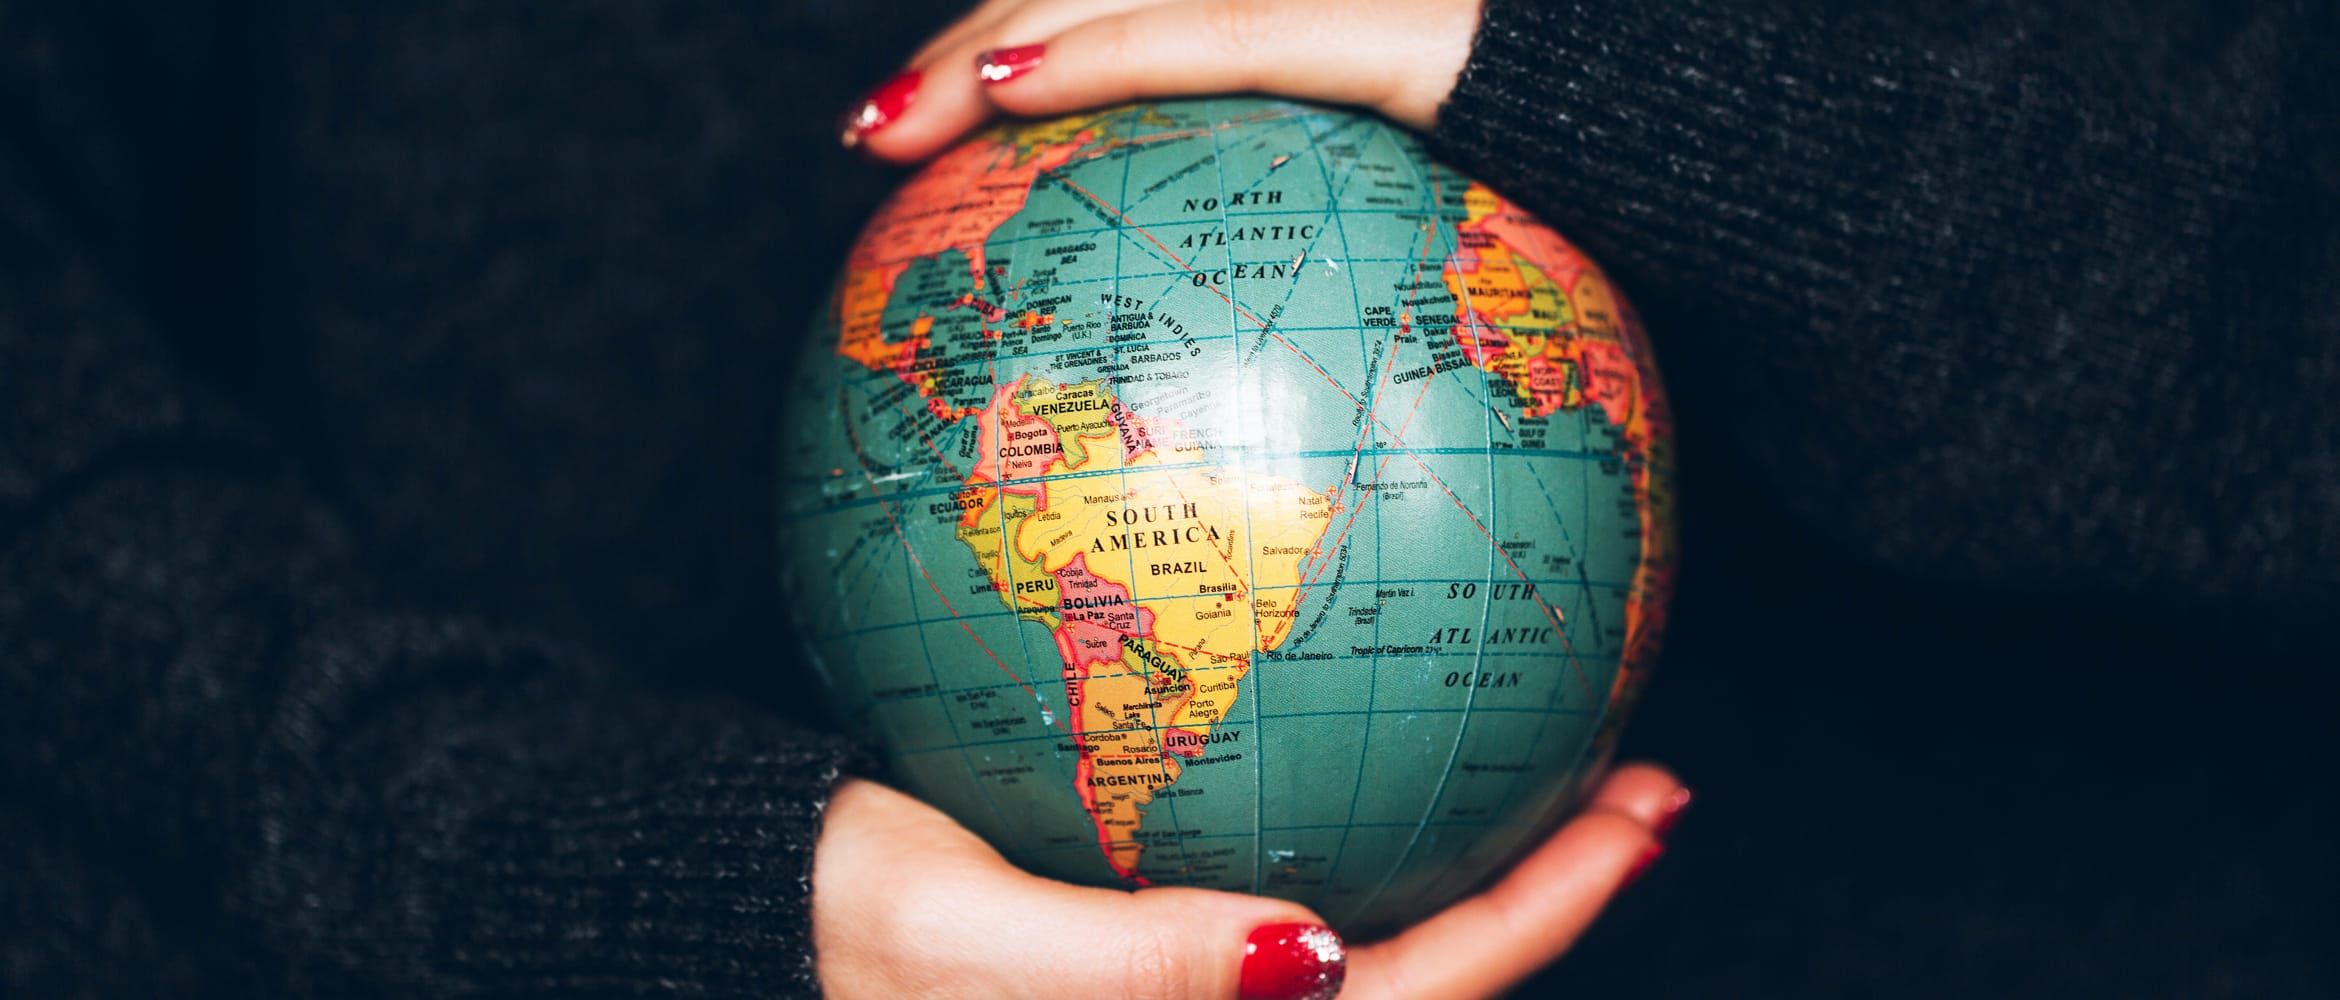 Woman's hands carefully holding a small globe, highlighting environmental responsibility